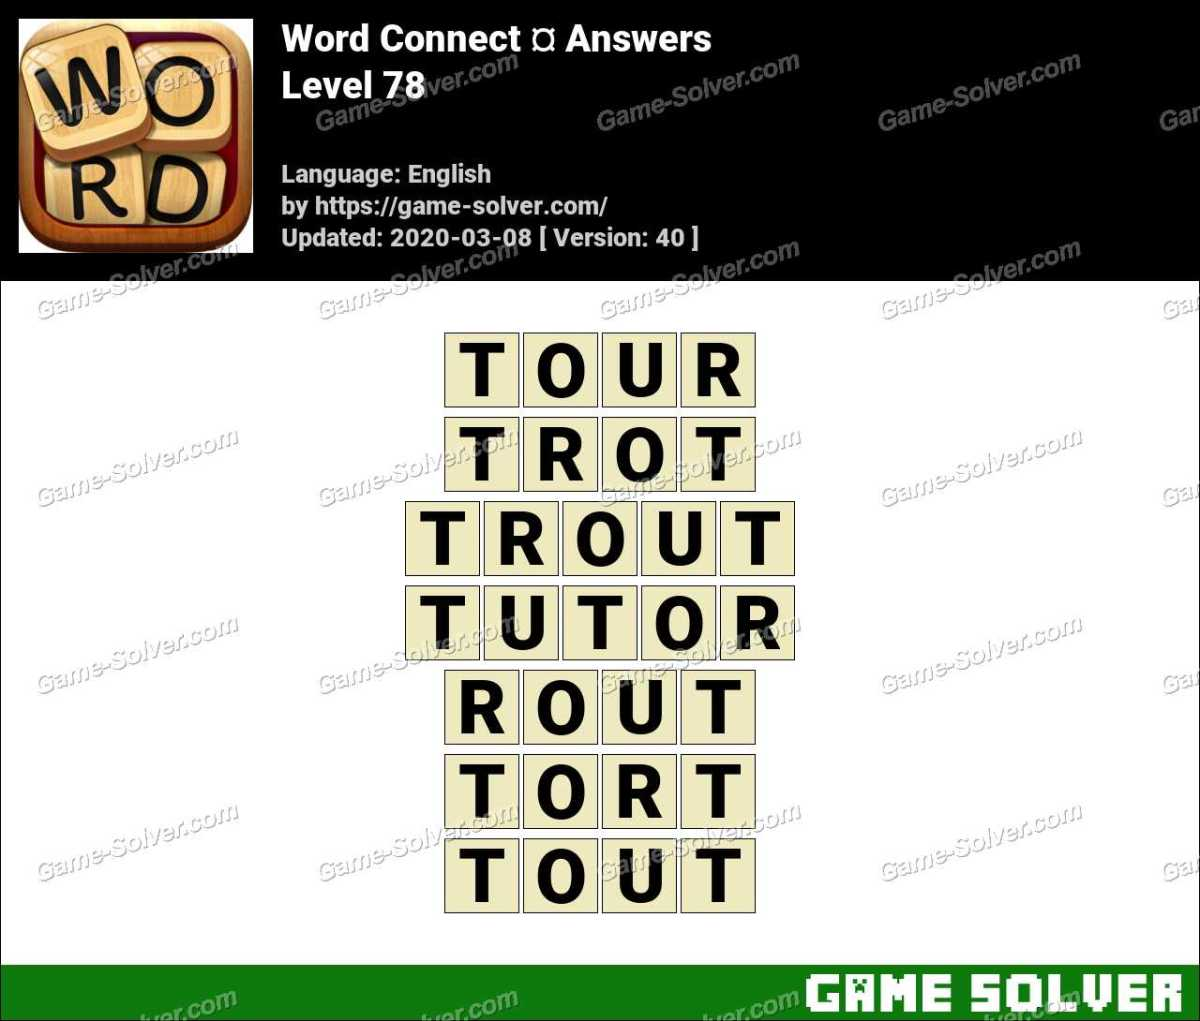 Word Connect Level 78 Answers